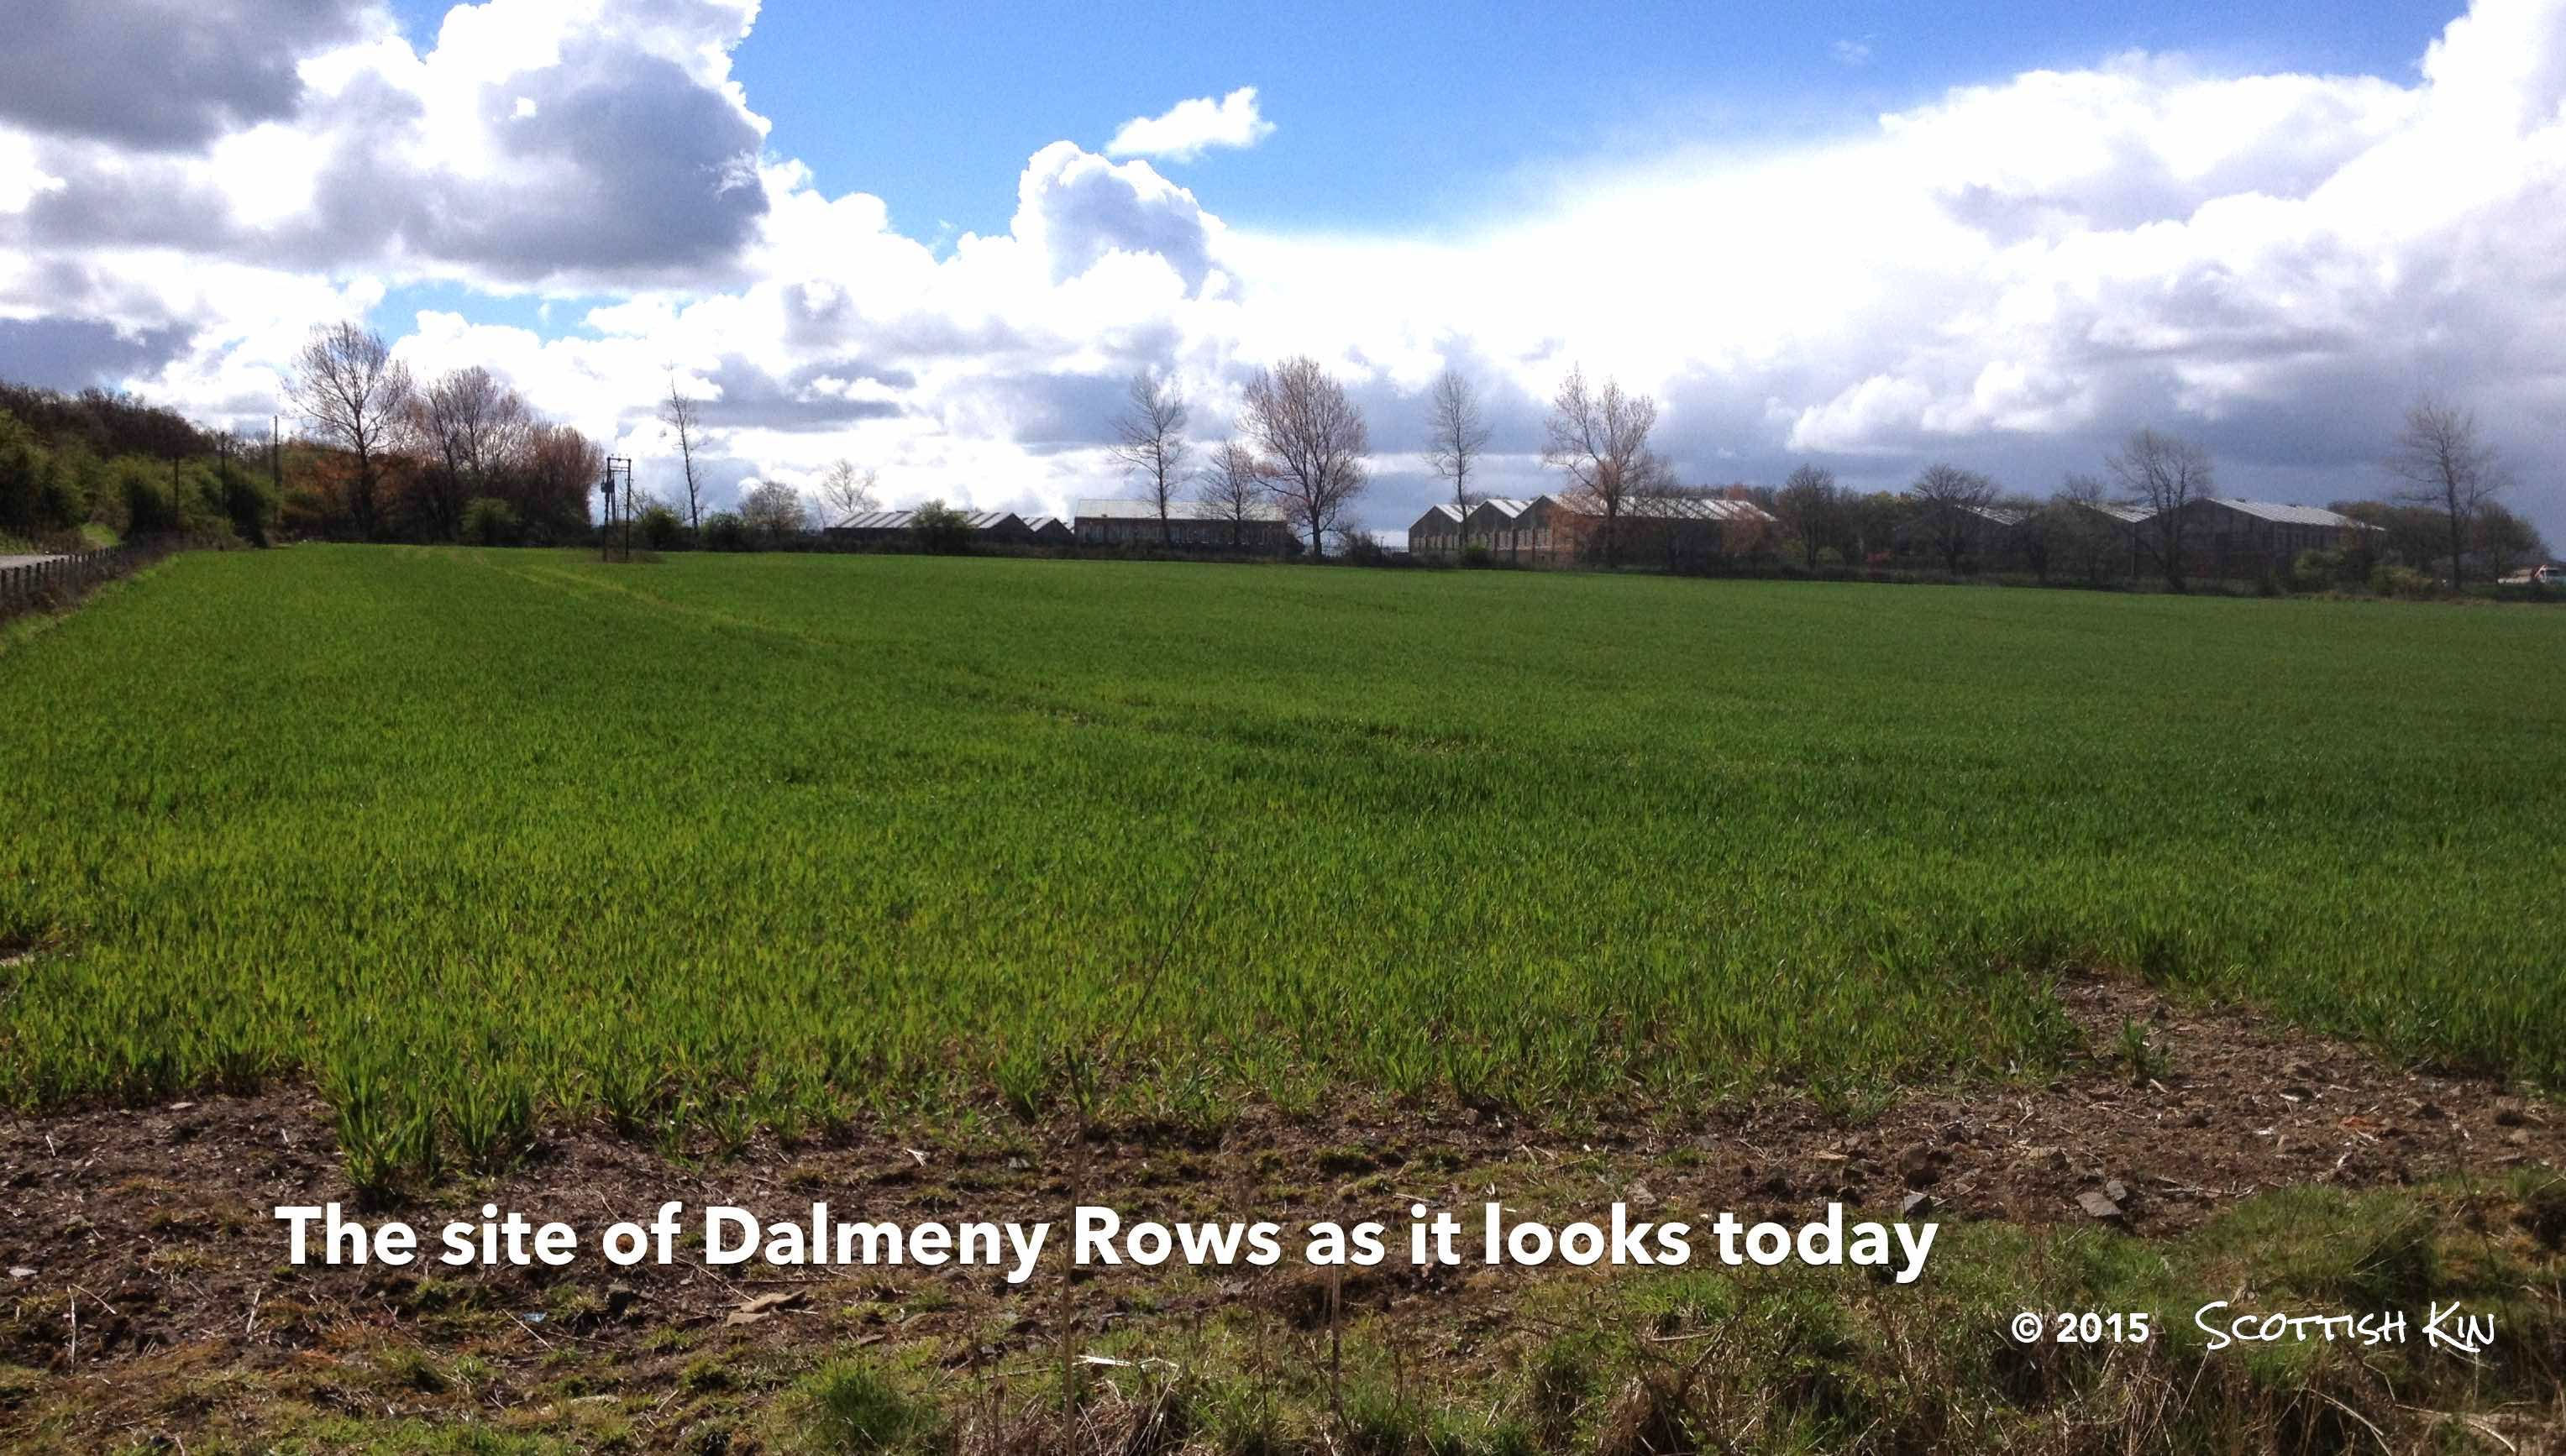 Dalmeny Rows today